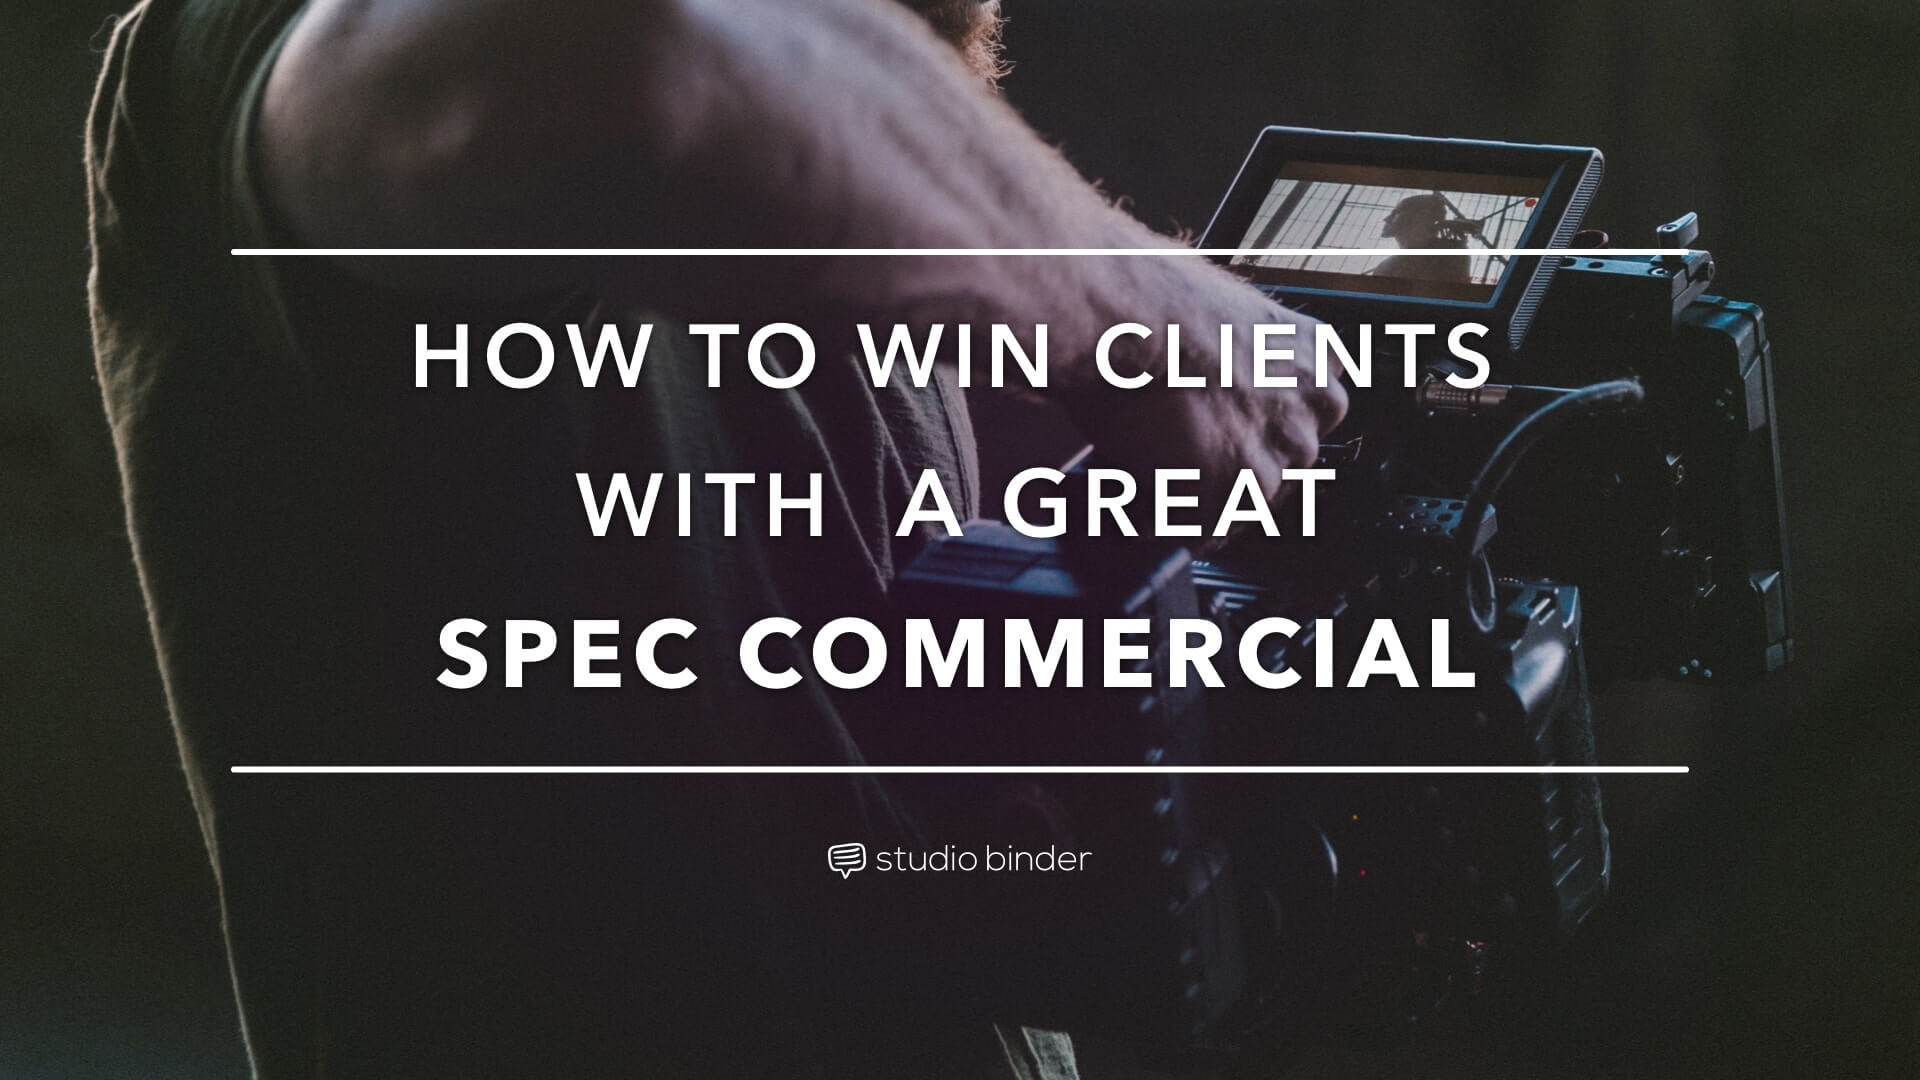 How To Win Clients With A Great Specmercial Featuring Spec Ad Examples   Studiobinder